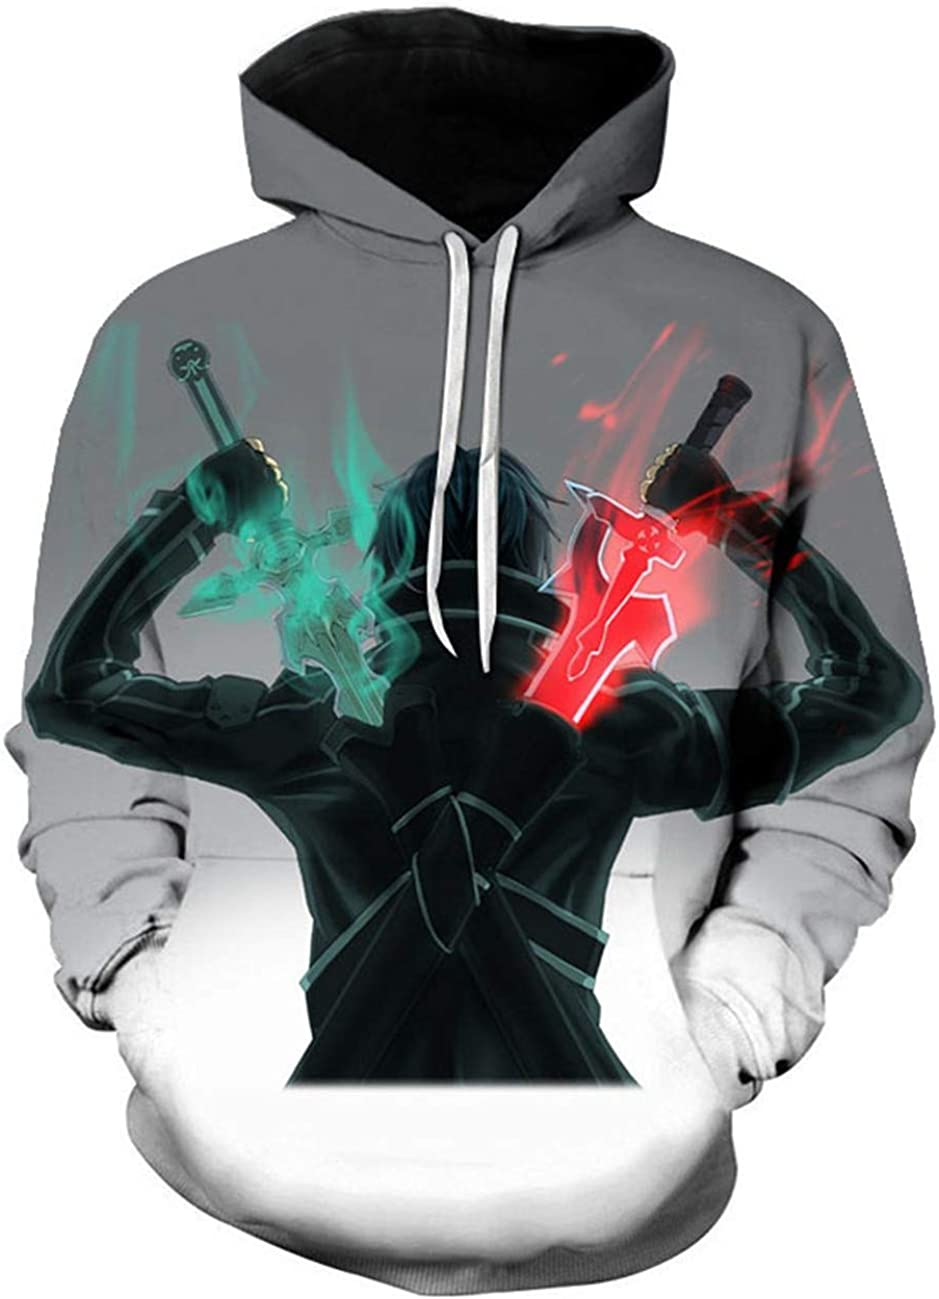 Details about  /Sword Art Online Kirito Anime Casual Graphic Print Thin Hoodie Sweater S-4XL